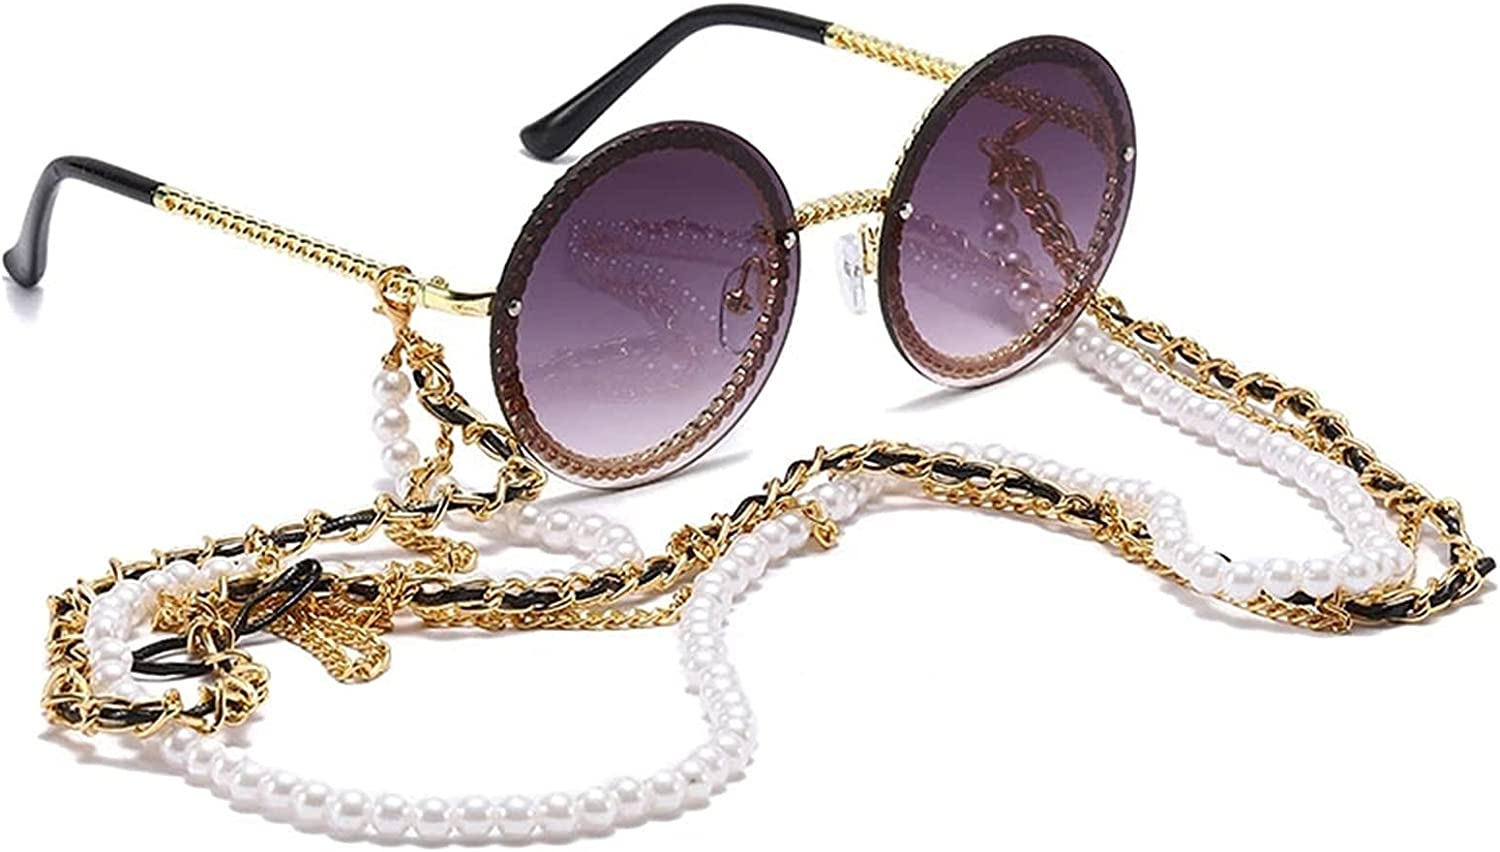 White Pearl Sunglasses Chain Women Lanyard with Strap Eye Glasses Accessories for Lady (Color : Gold)